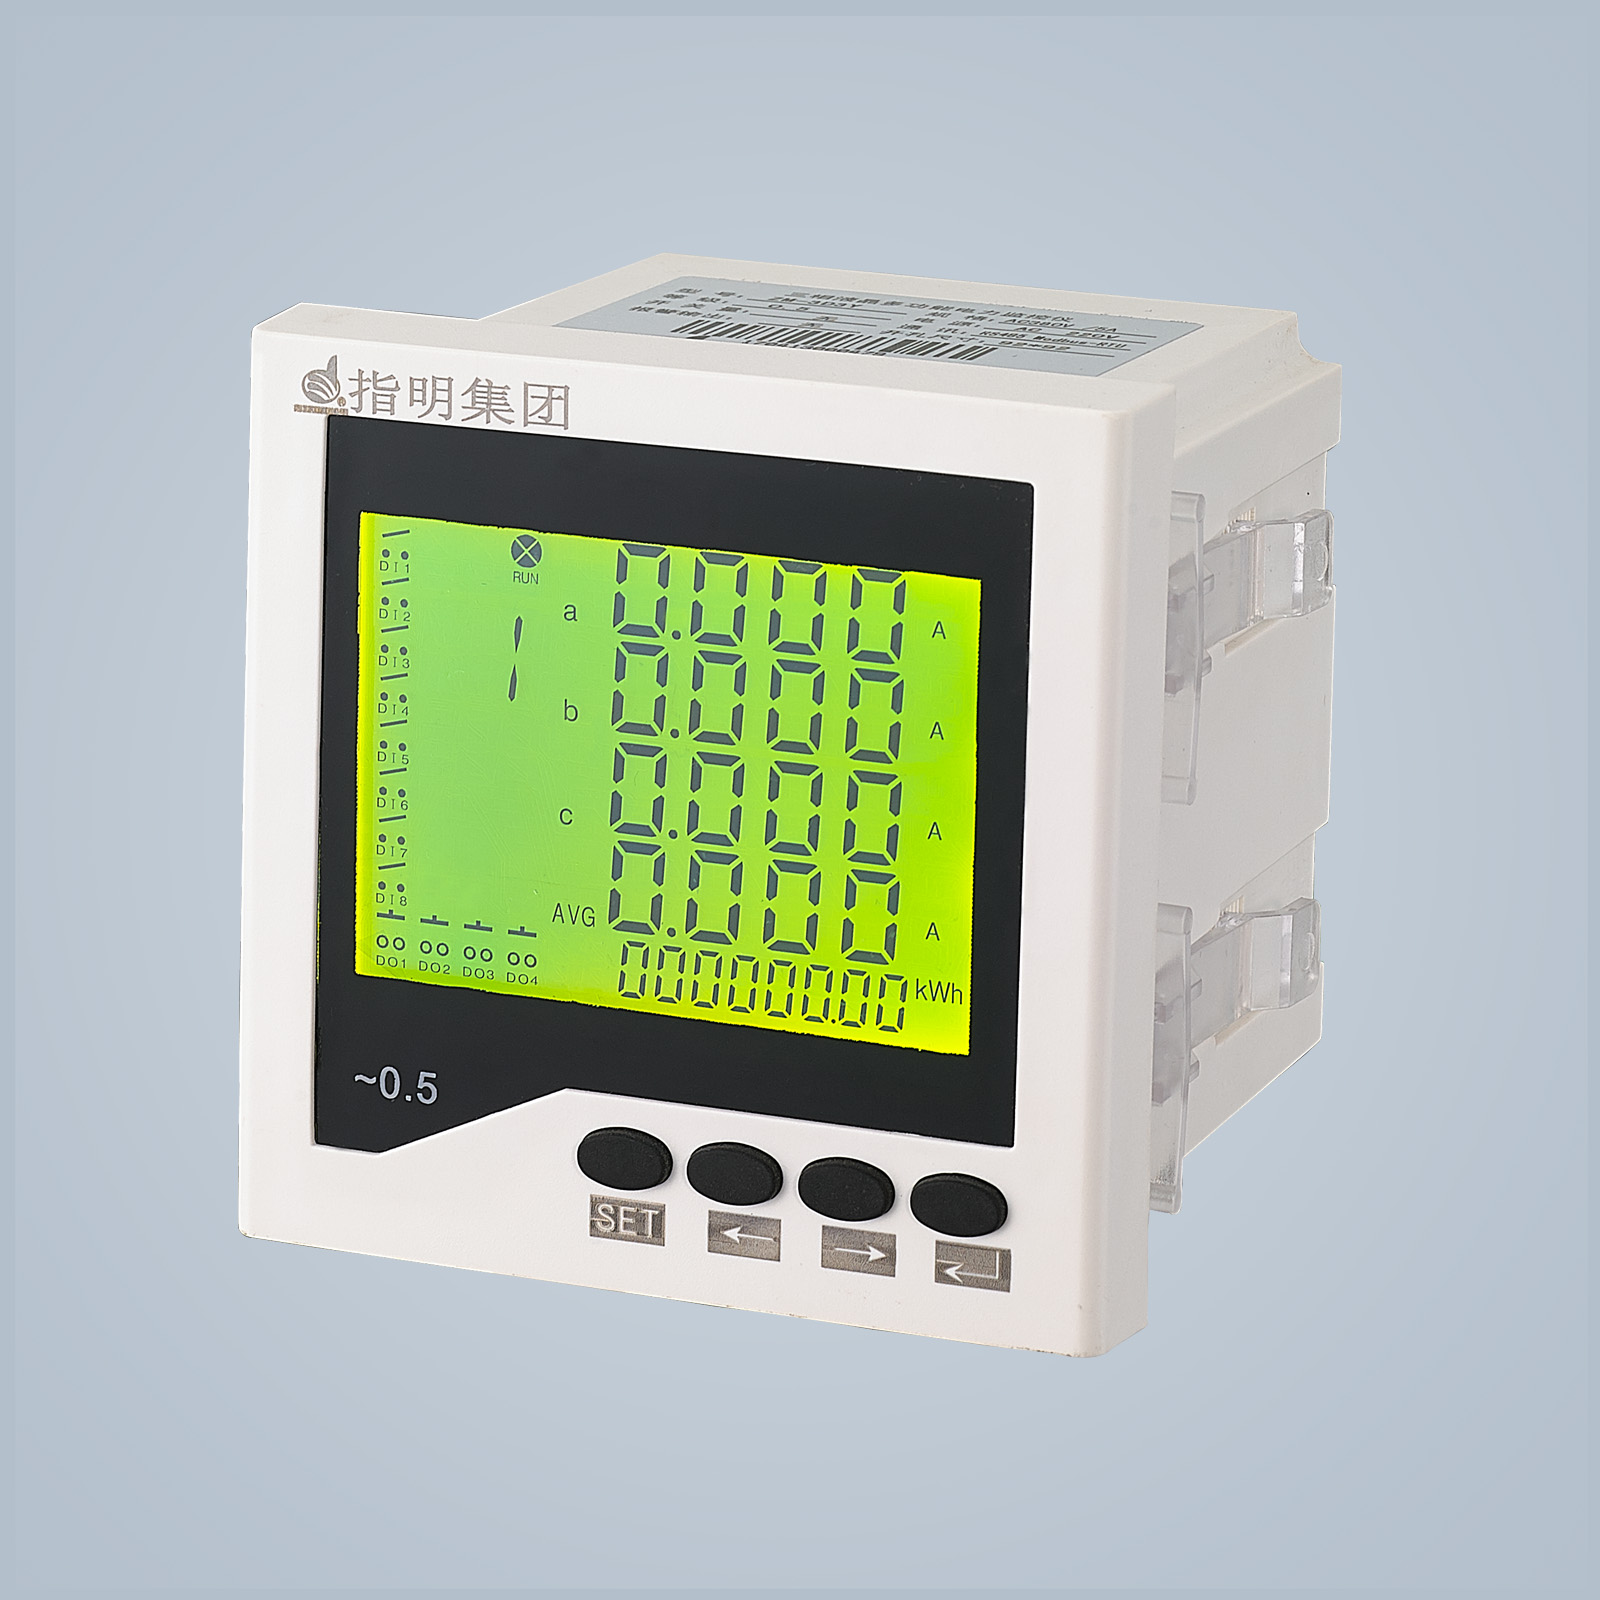 LCD Series Multi-function monitoring instrument